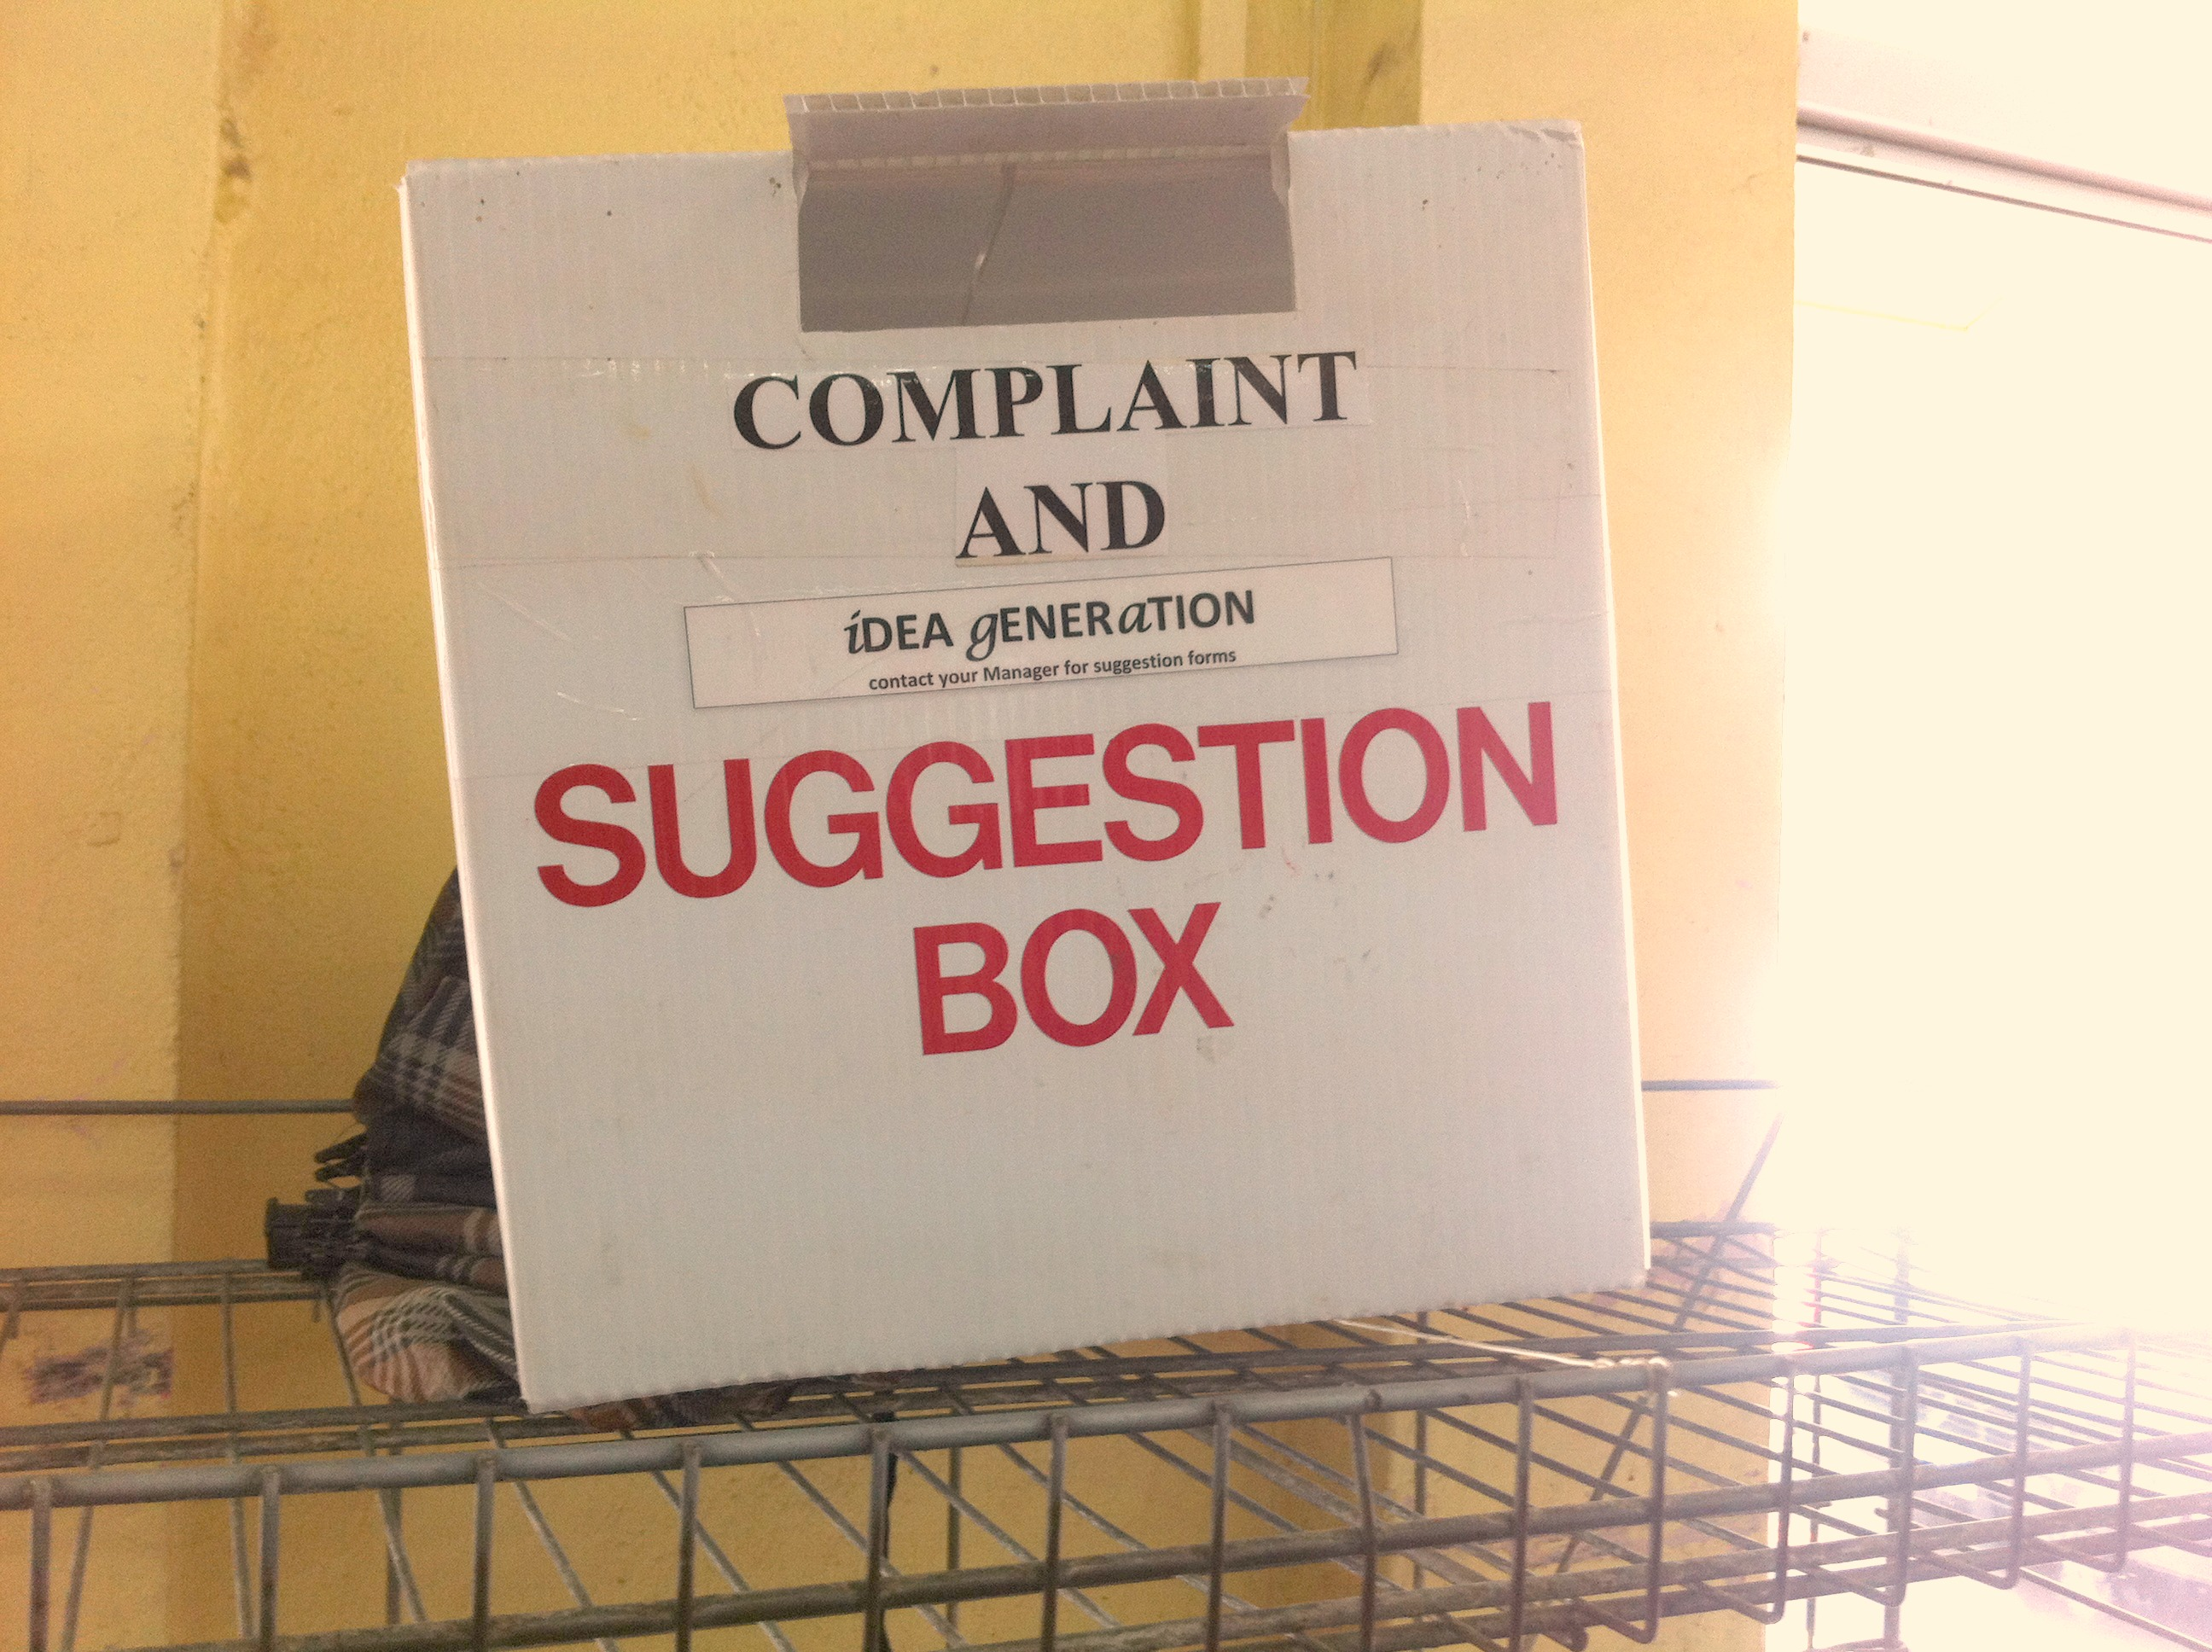 The best suggestion box in the world